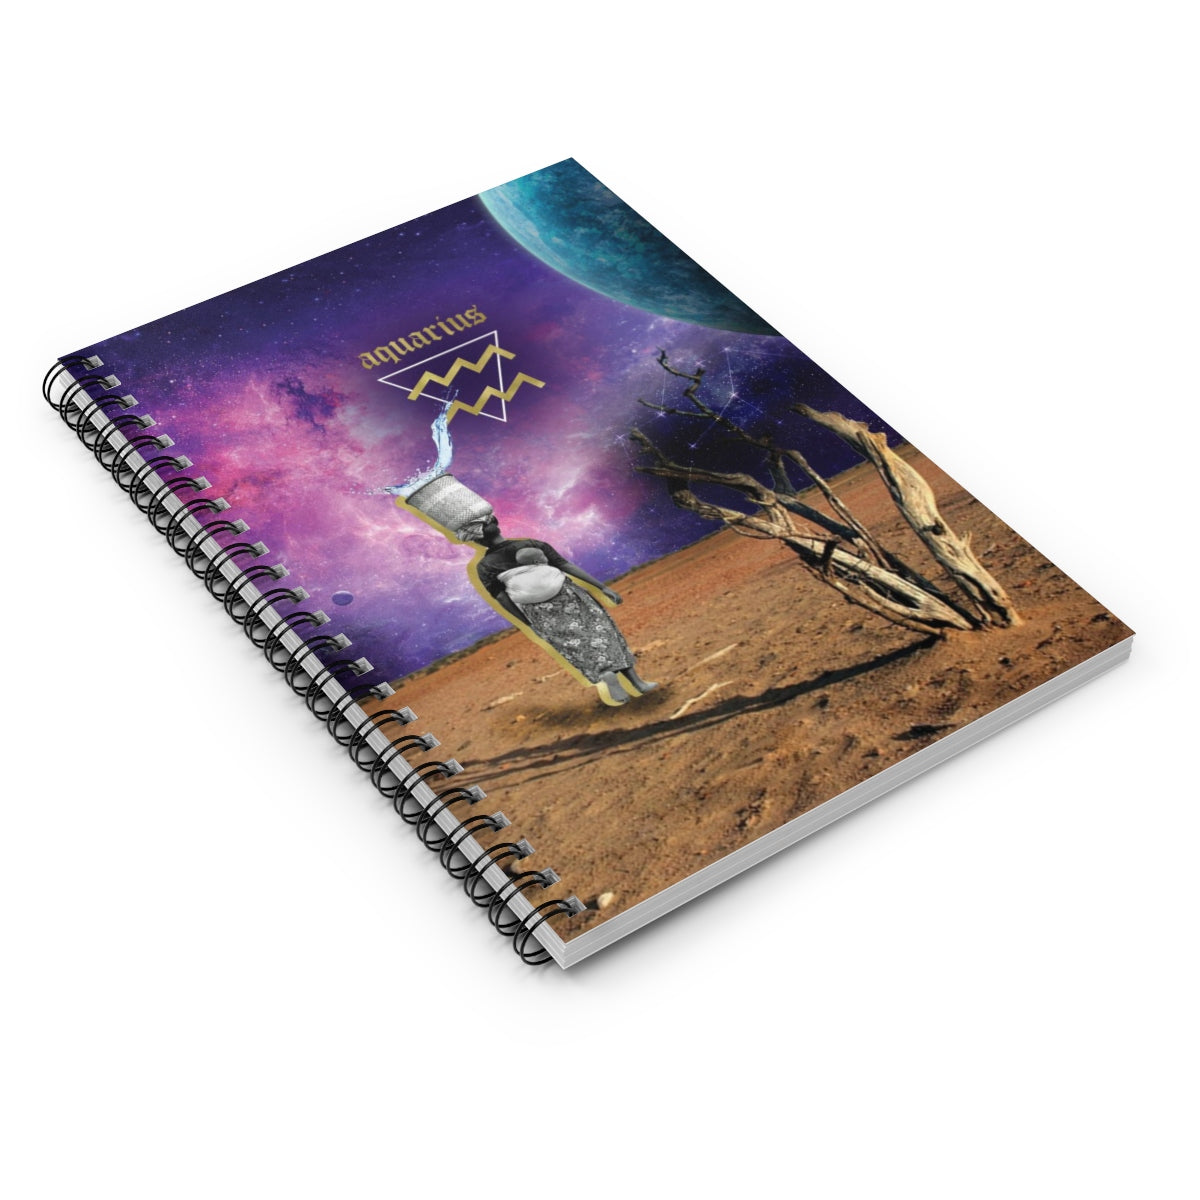 Aquarius Notebook - #ChildishZodiac